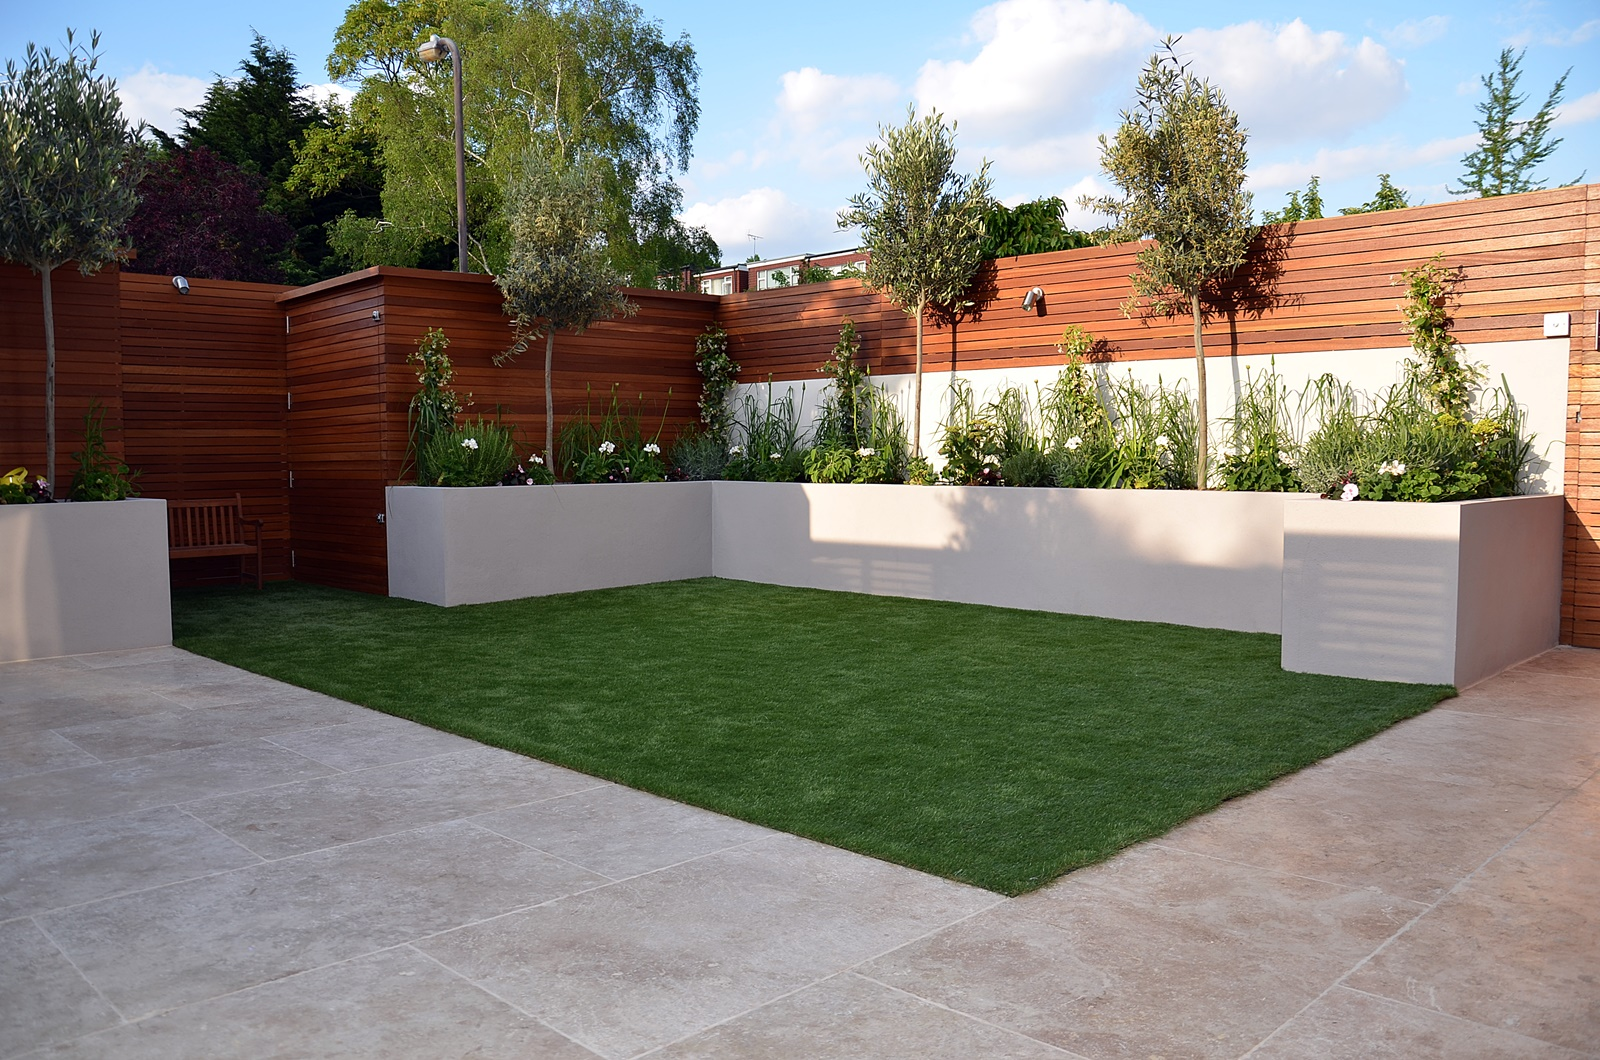 Modern garden design fulham chelsea clapham battersea for Garden ideas 2016